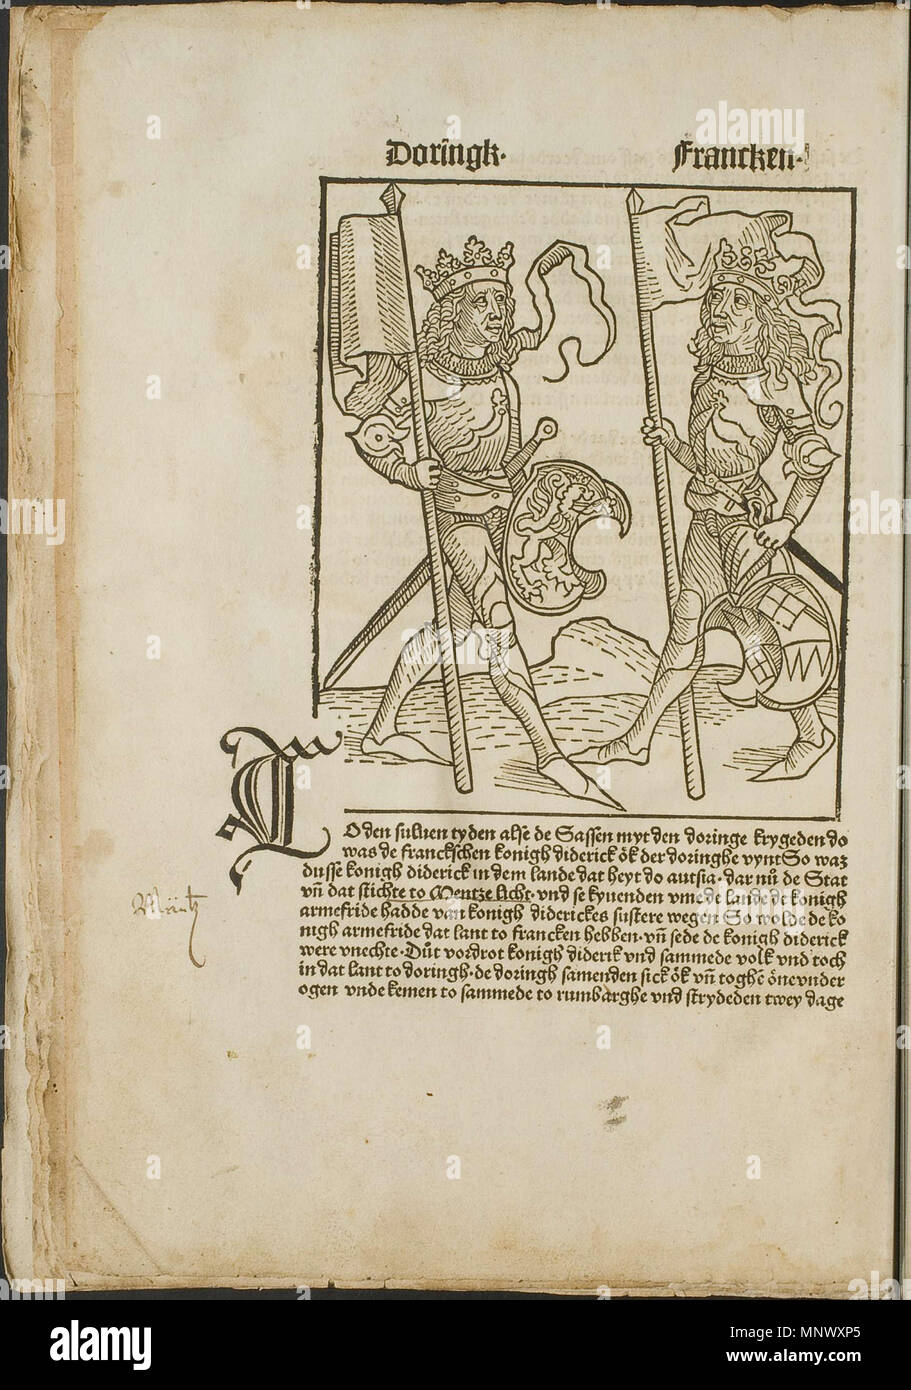 . Illustration from the incunabulum: Cronecken der Sassen (The Chronicles of Saxony) printed by Peter Schöffer in Mainz. 1492. Conrad Bote (Konrad Botho) 1075 Royals with Crests p00022 Stock Photo